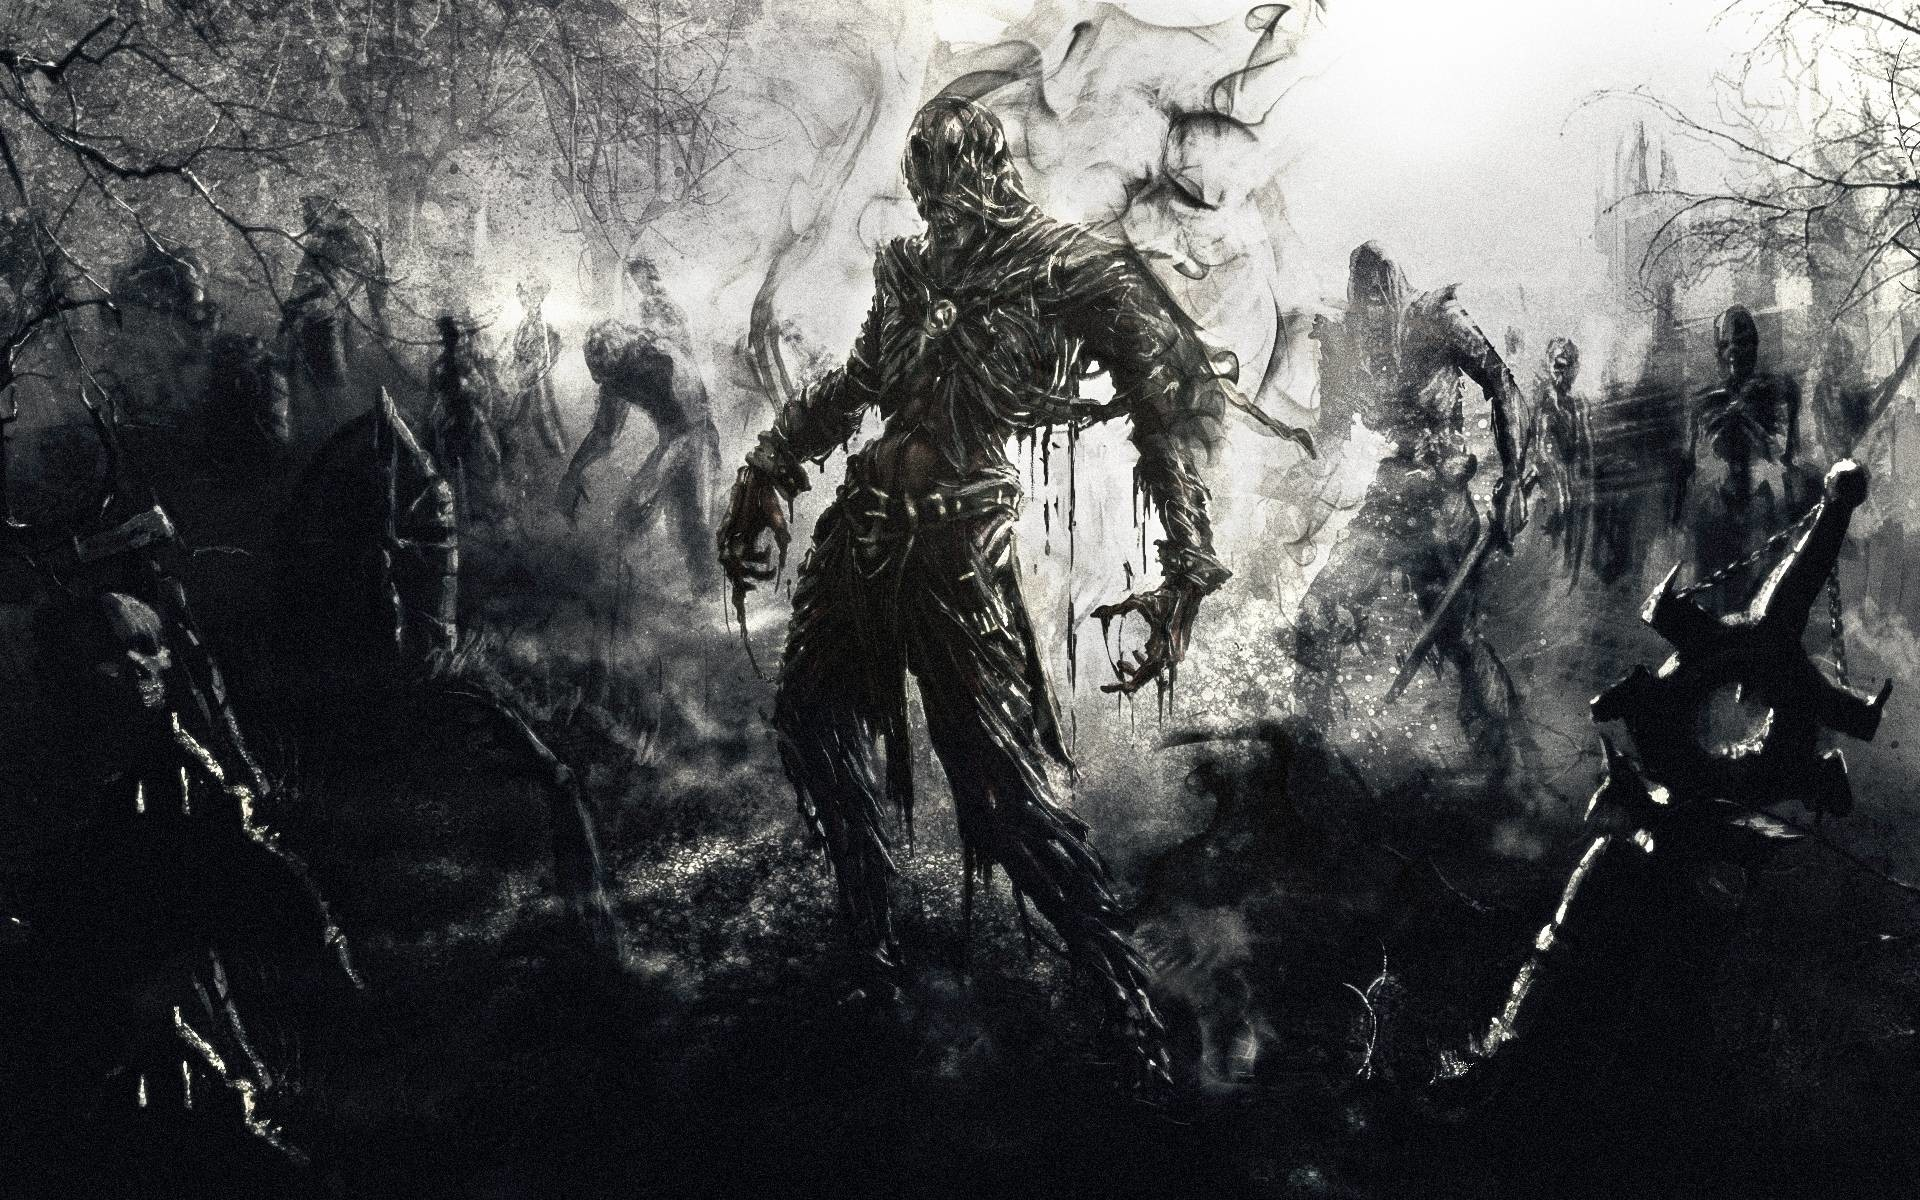 1920x1200 Wallpapers For > Black Ops 2 Zombies Wallpaper 1920x1080